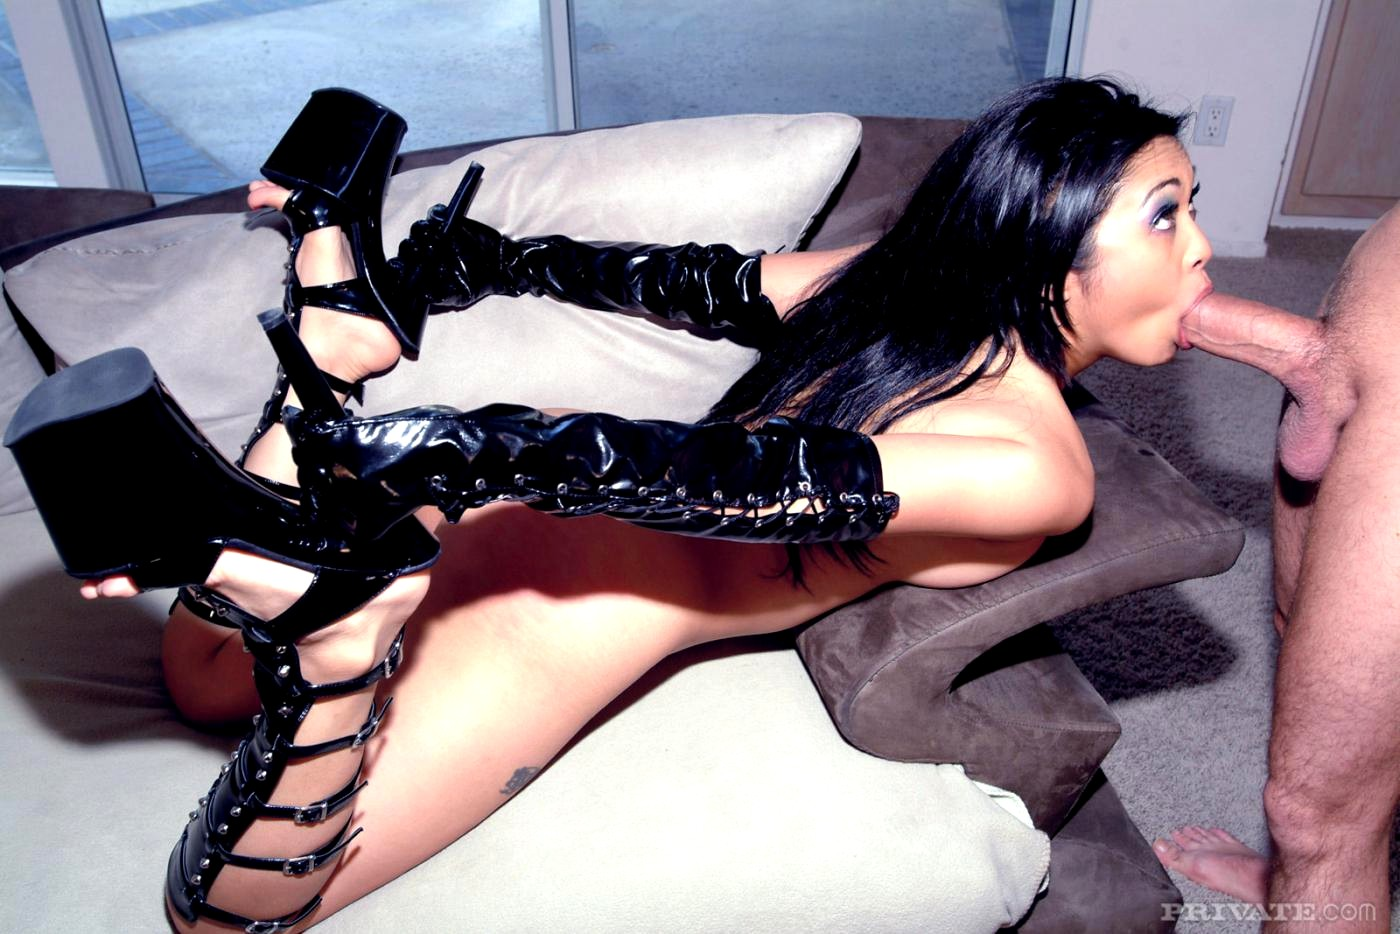 Chinese boots trampling